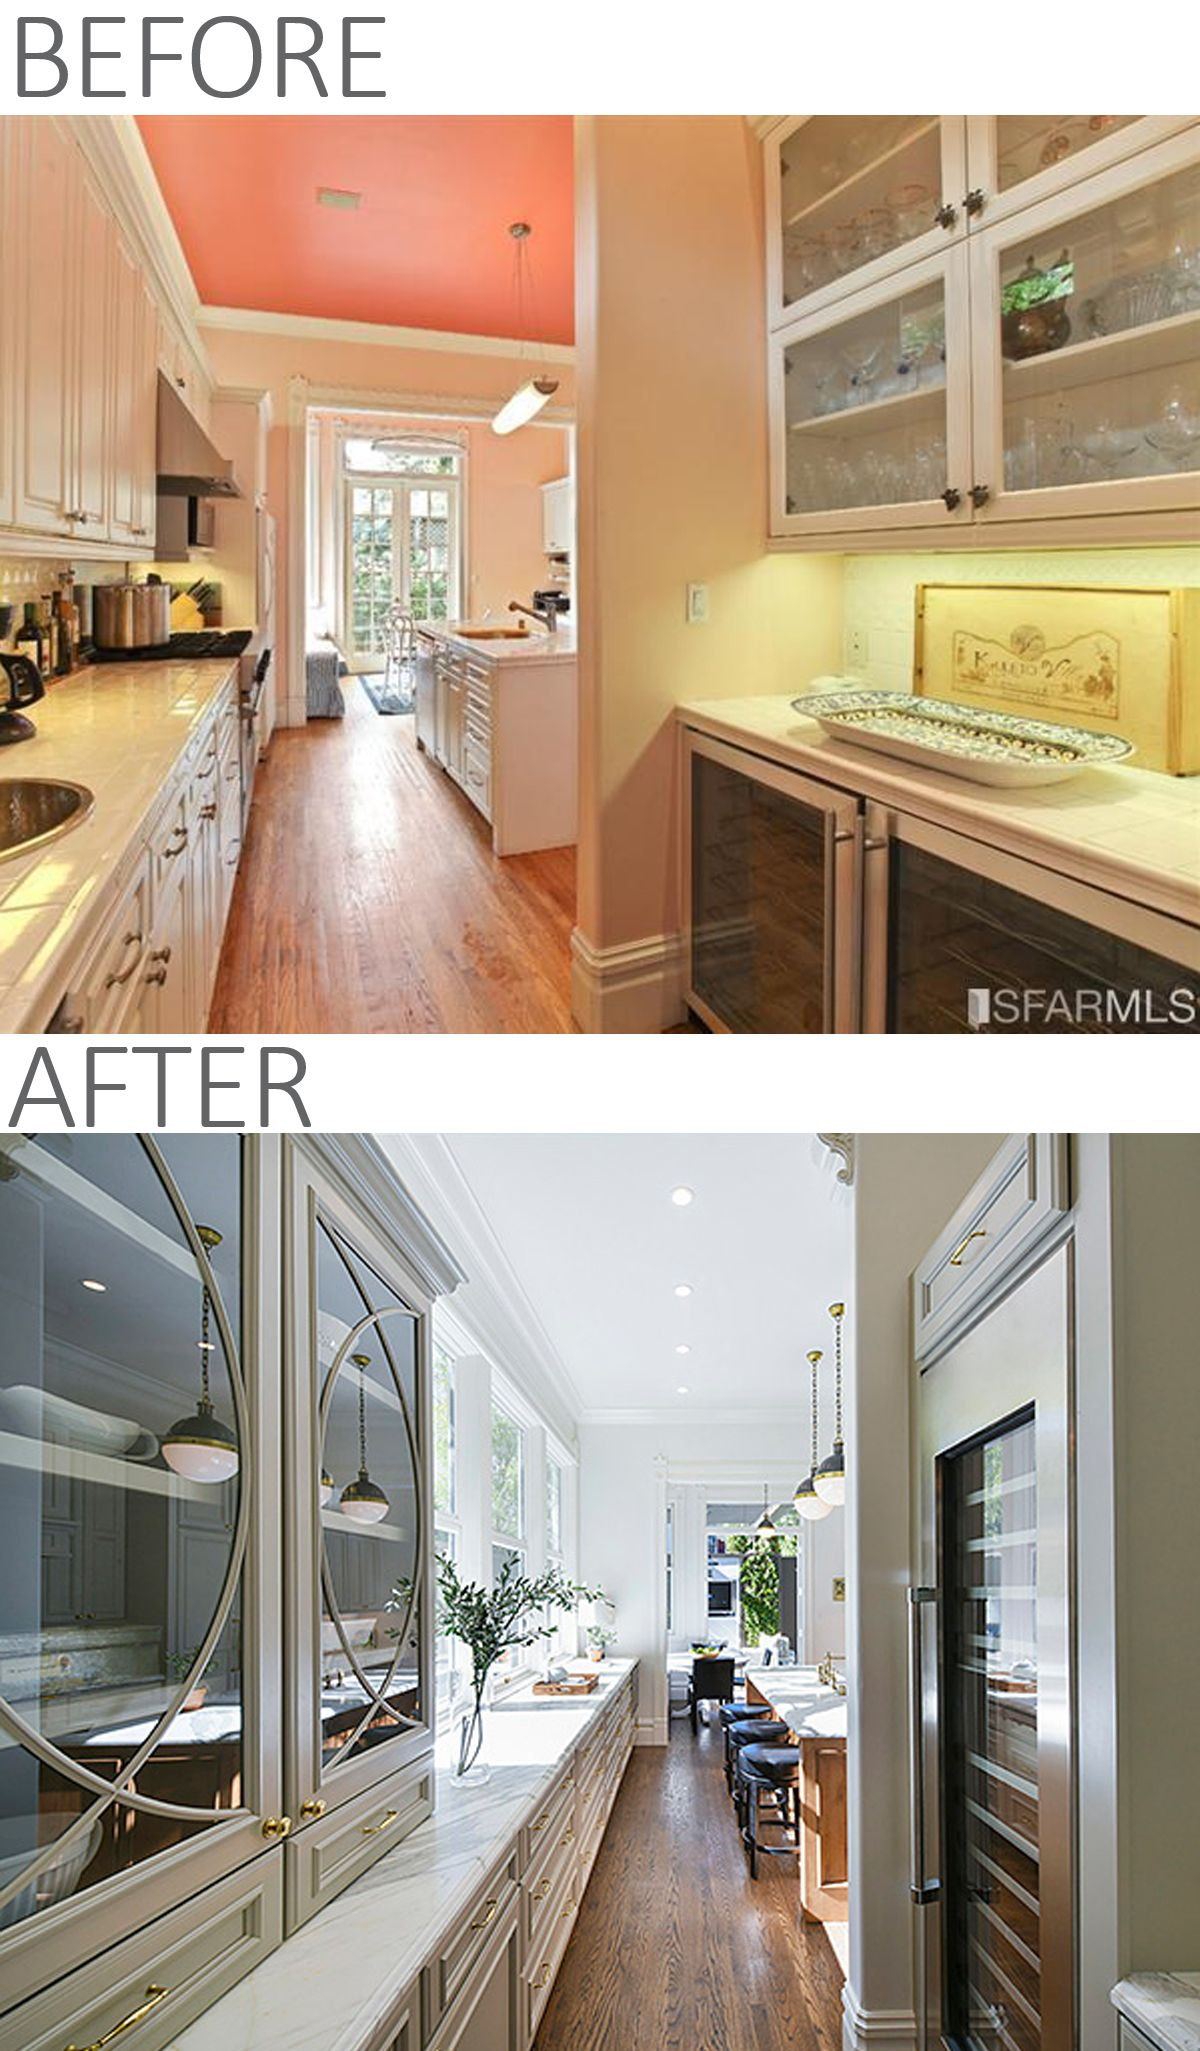 Before and After Kitchen Remodel Photos - Vintage Victorian Home ...